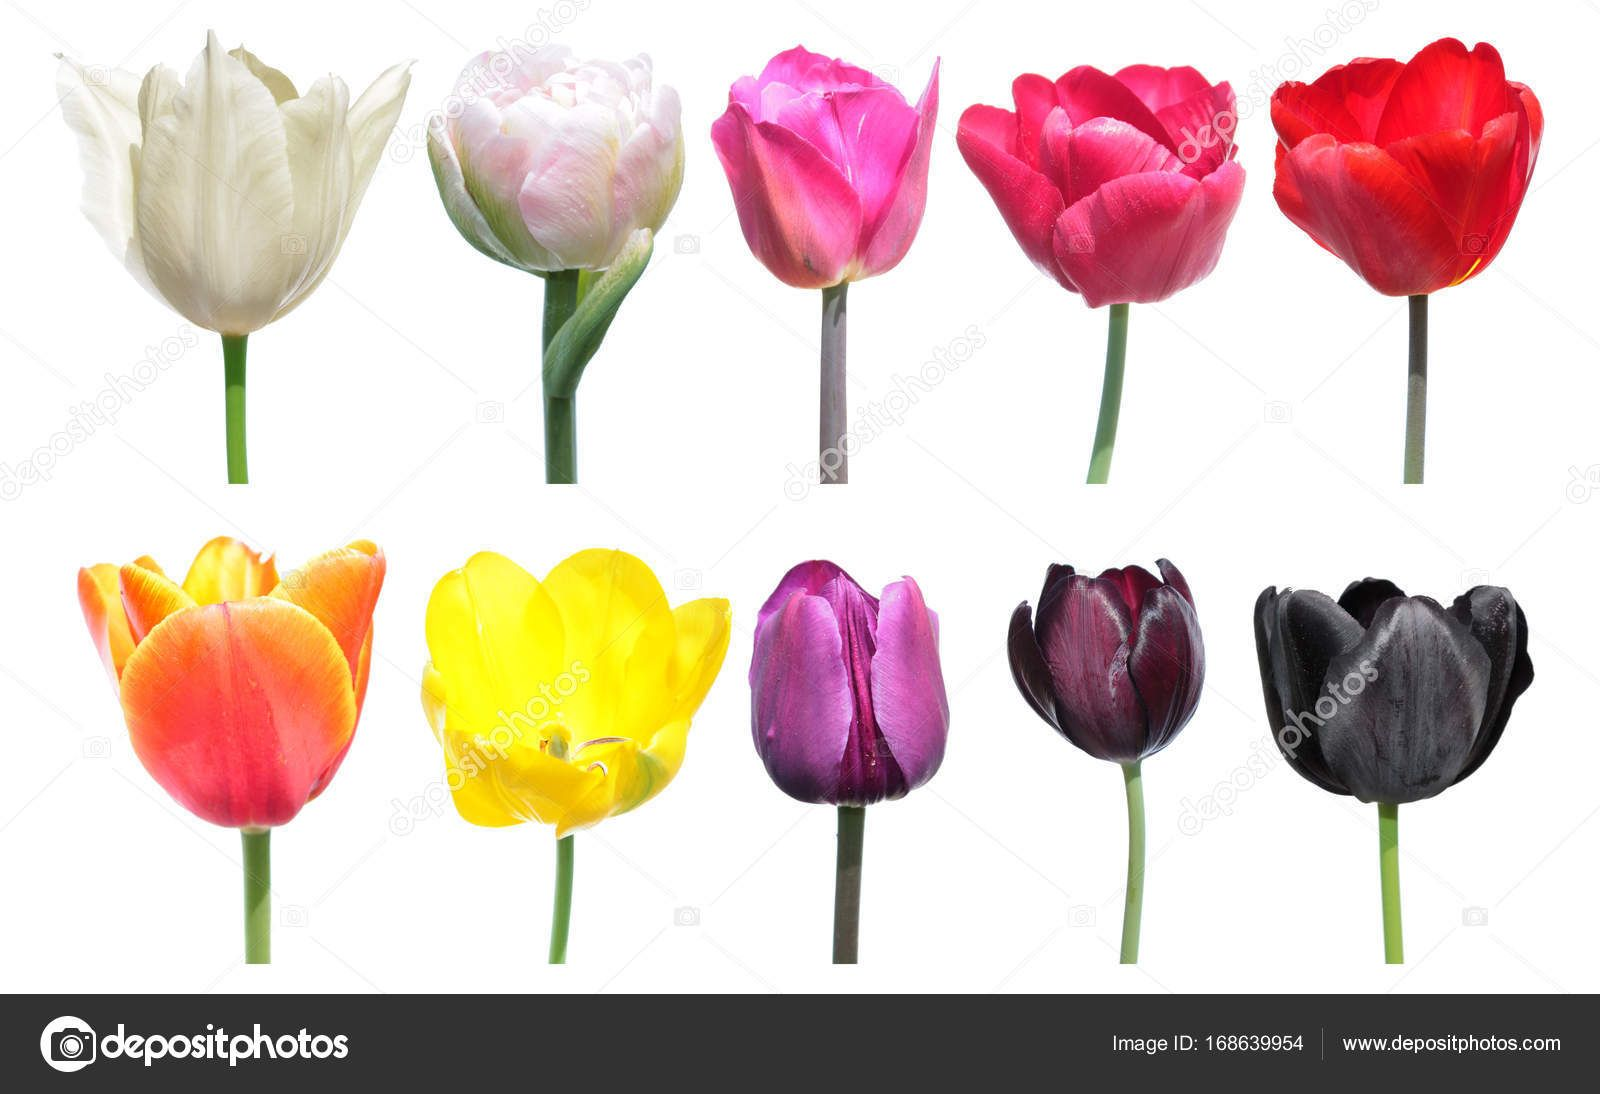 Variety Of Colors Of Tulip Flowers Color Palette Is An Example Of The Color Change In Tulip Flowers Set Of Different Tulip Tulips Flowers Tulips Color Change